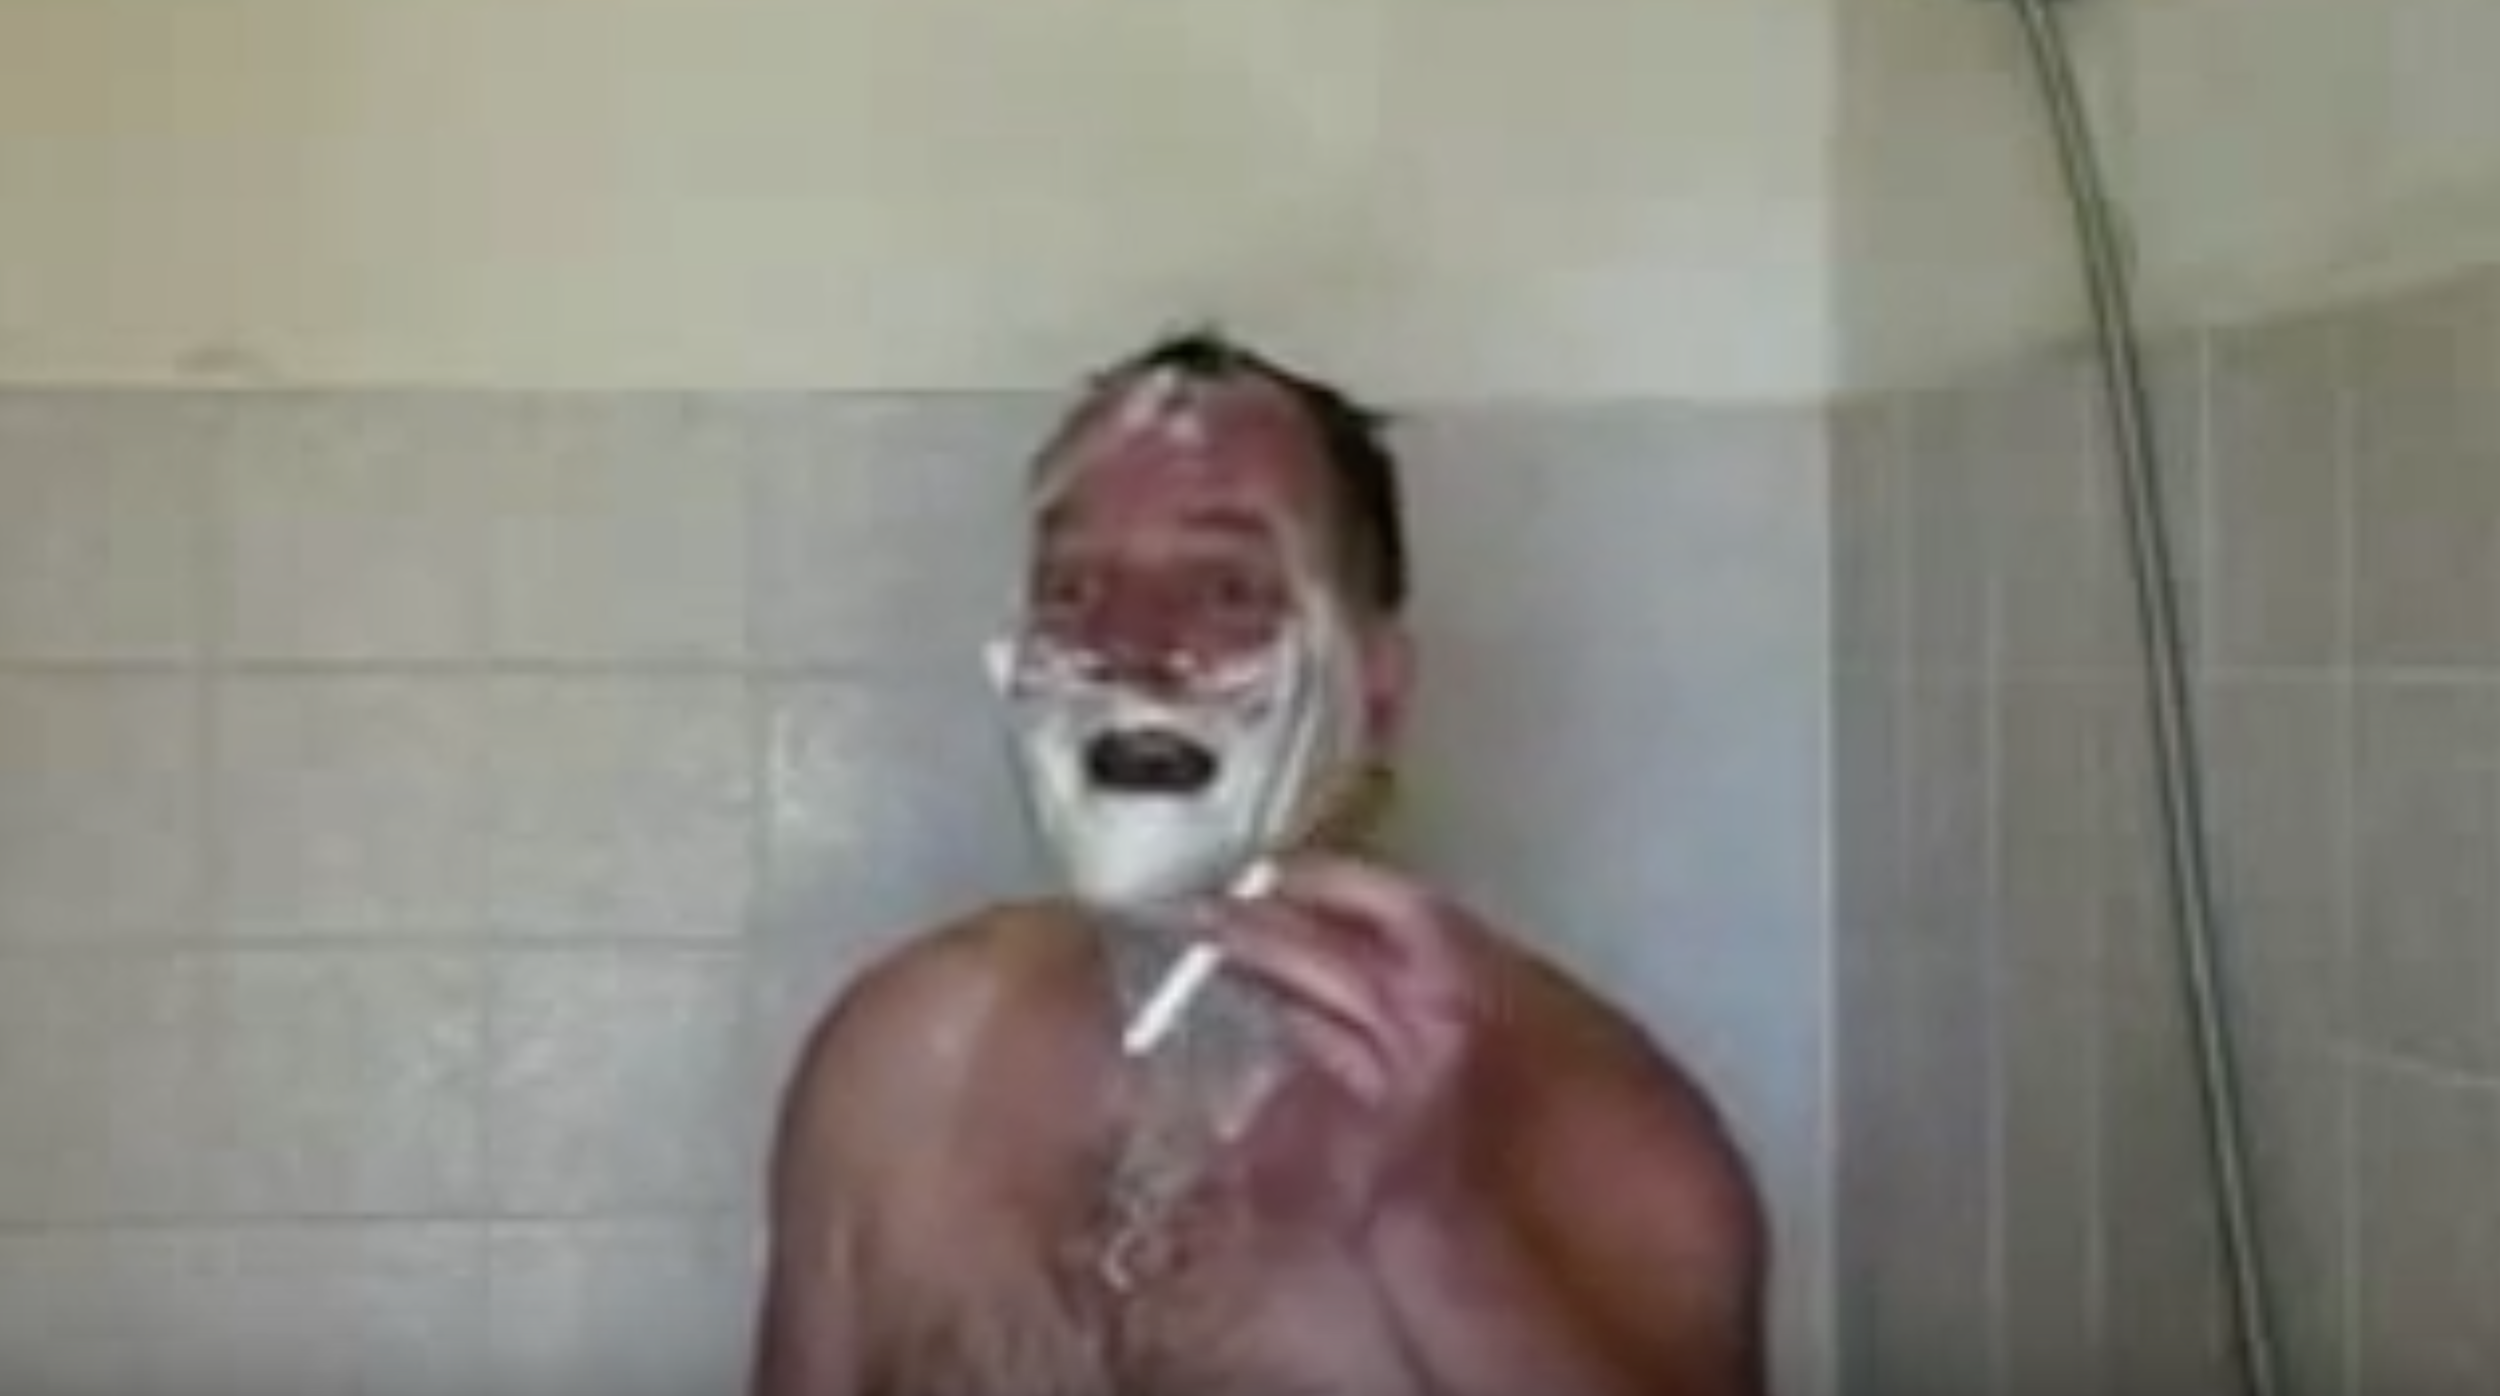 Smoking Shower Man's Moment of Pure Joy